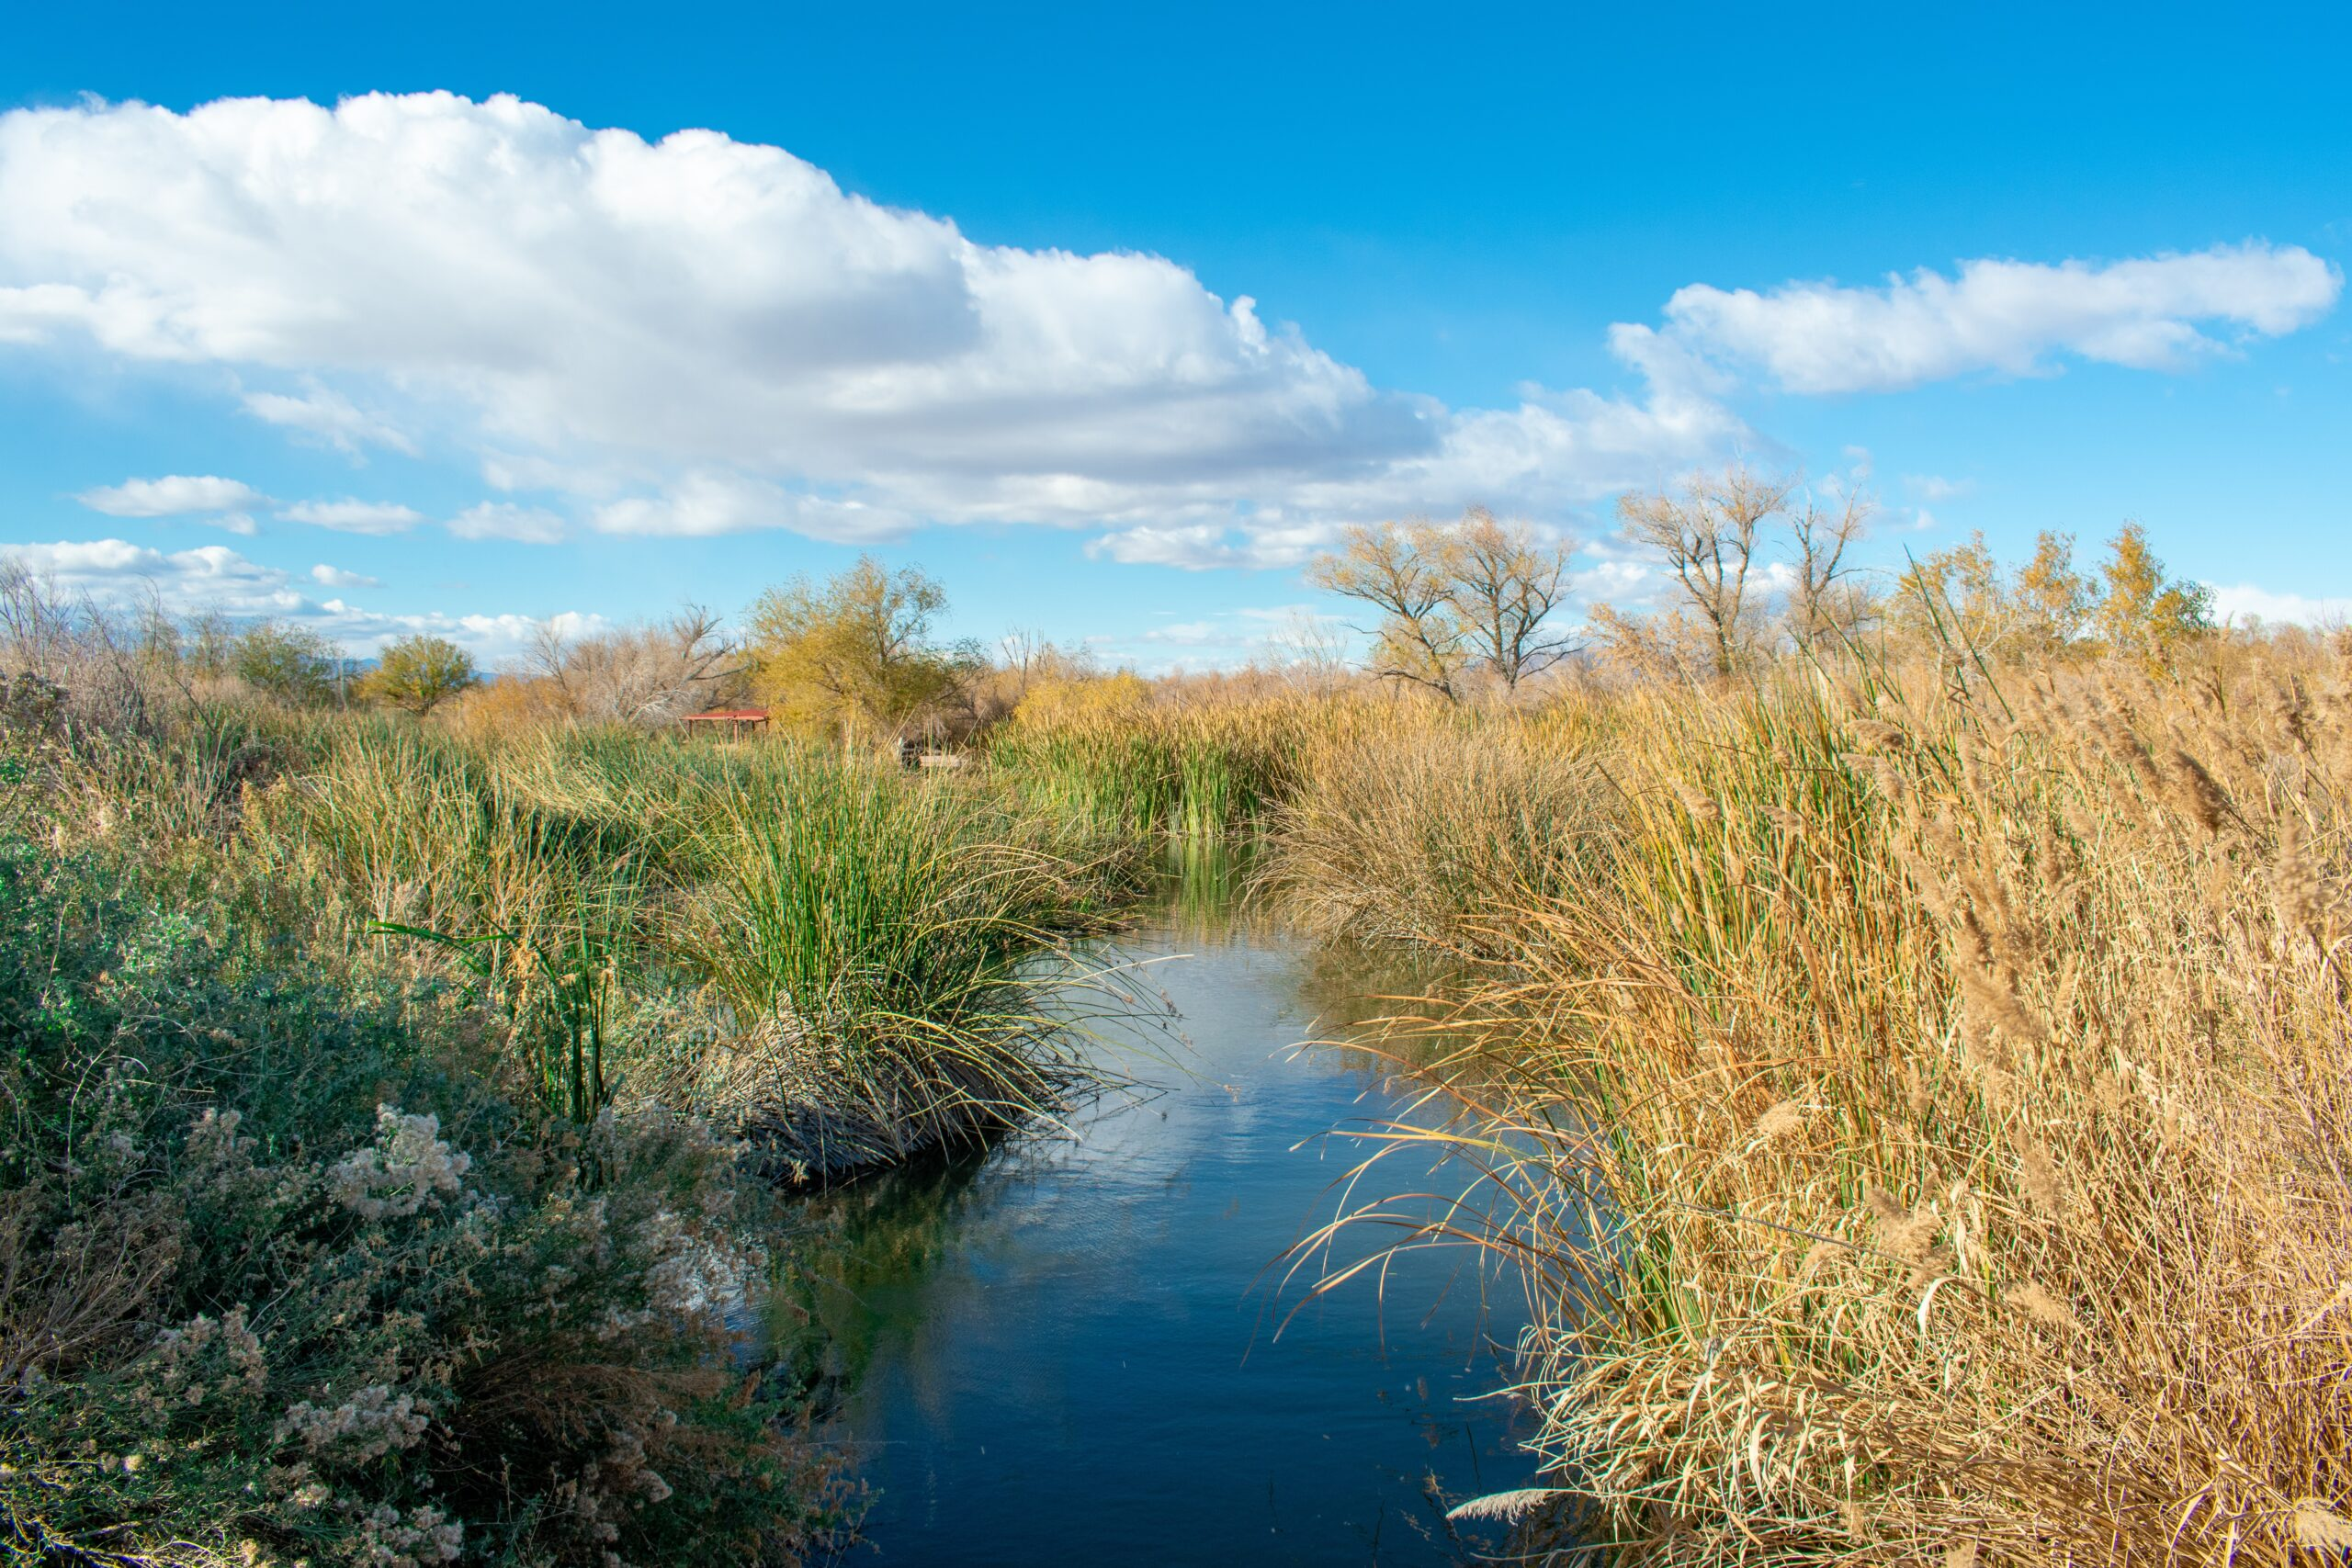 Lawsuit Challenges Loopholes in Obama-era Rule Exempting Wetlands and Streams from Clean Water Act Protections